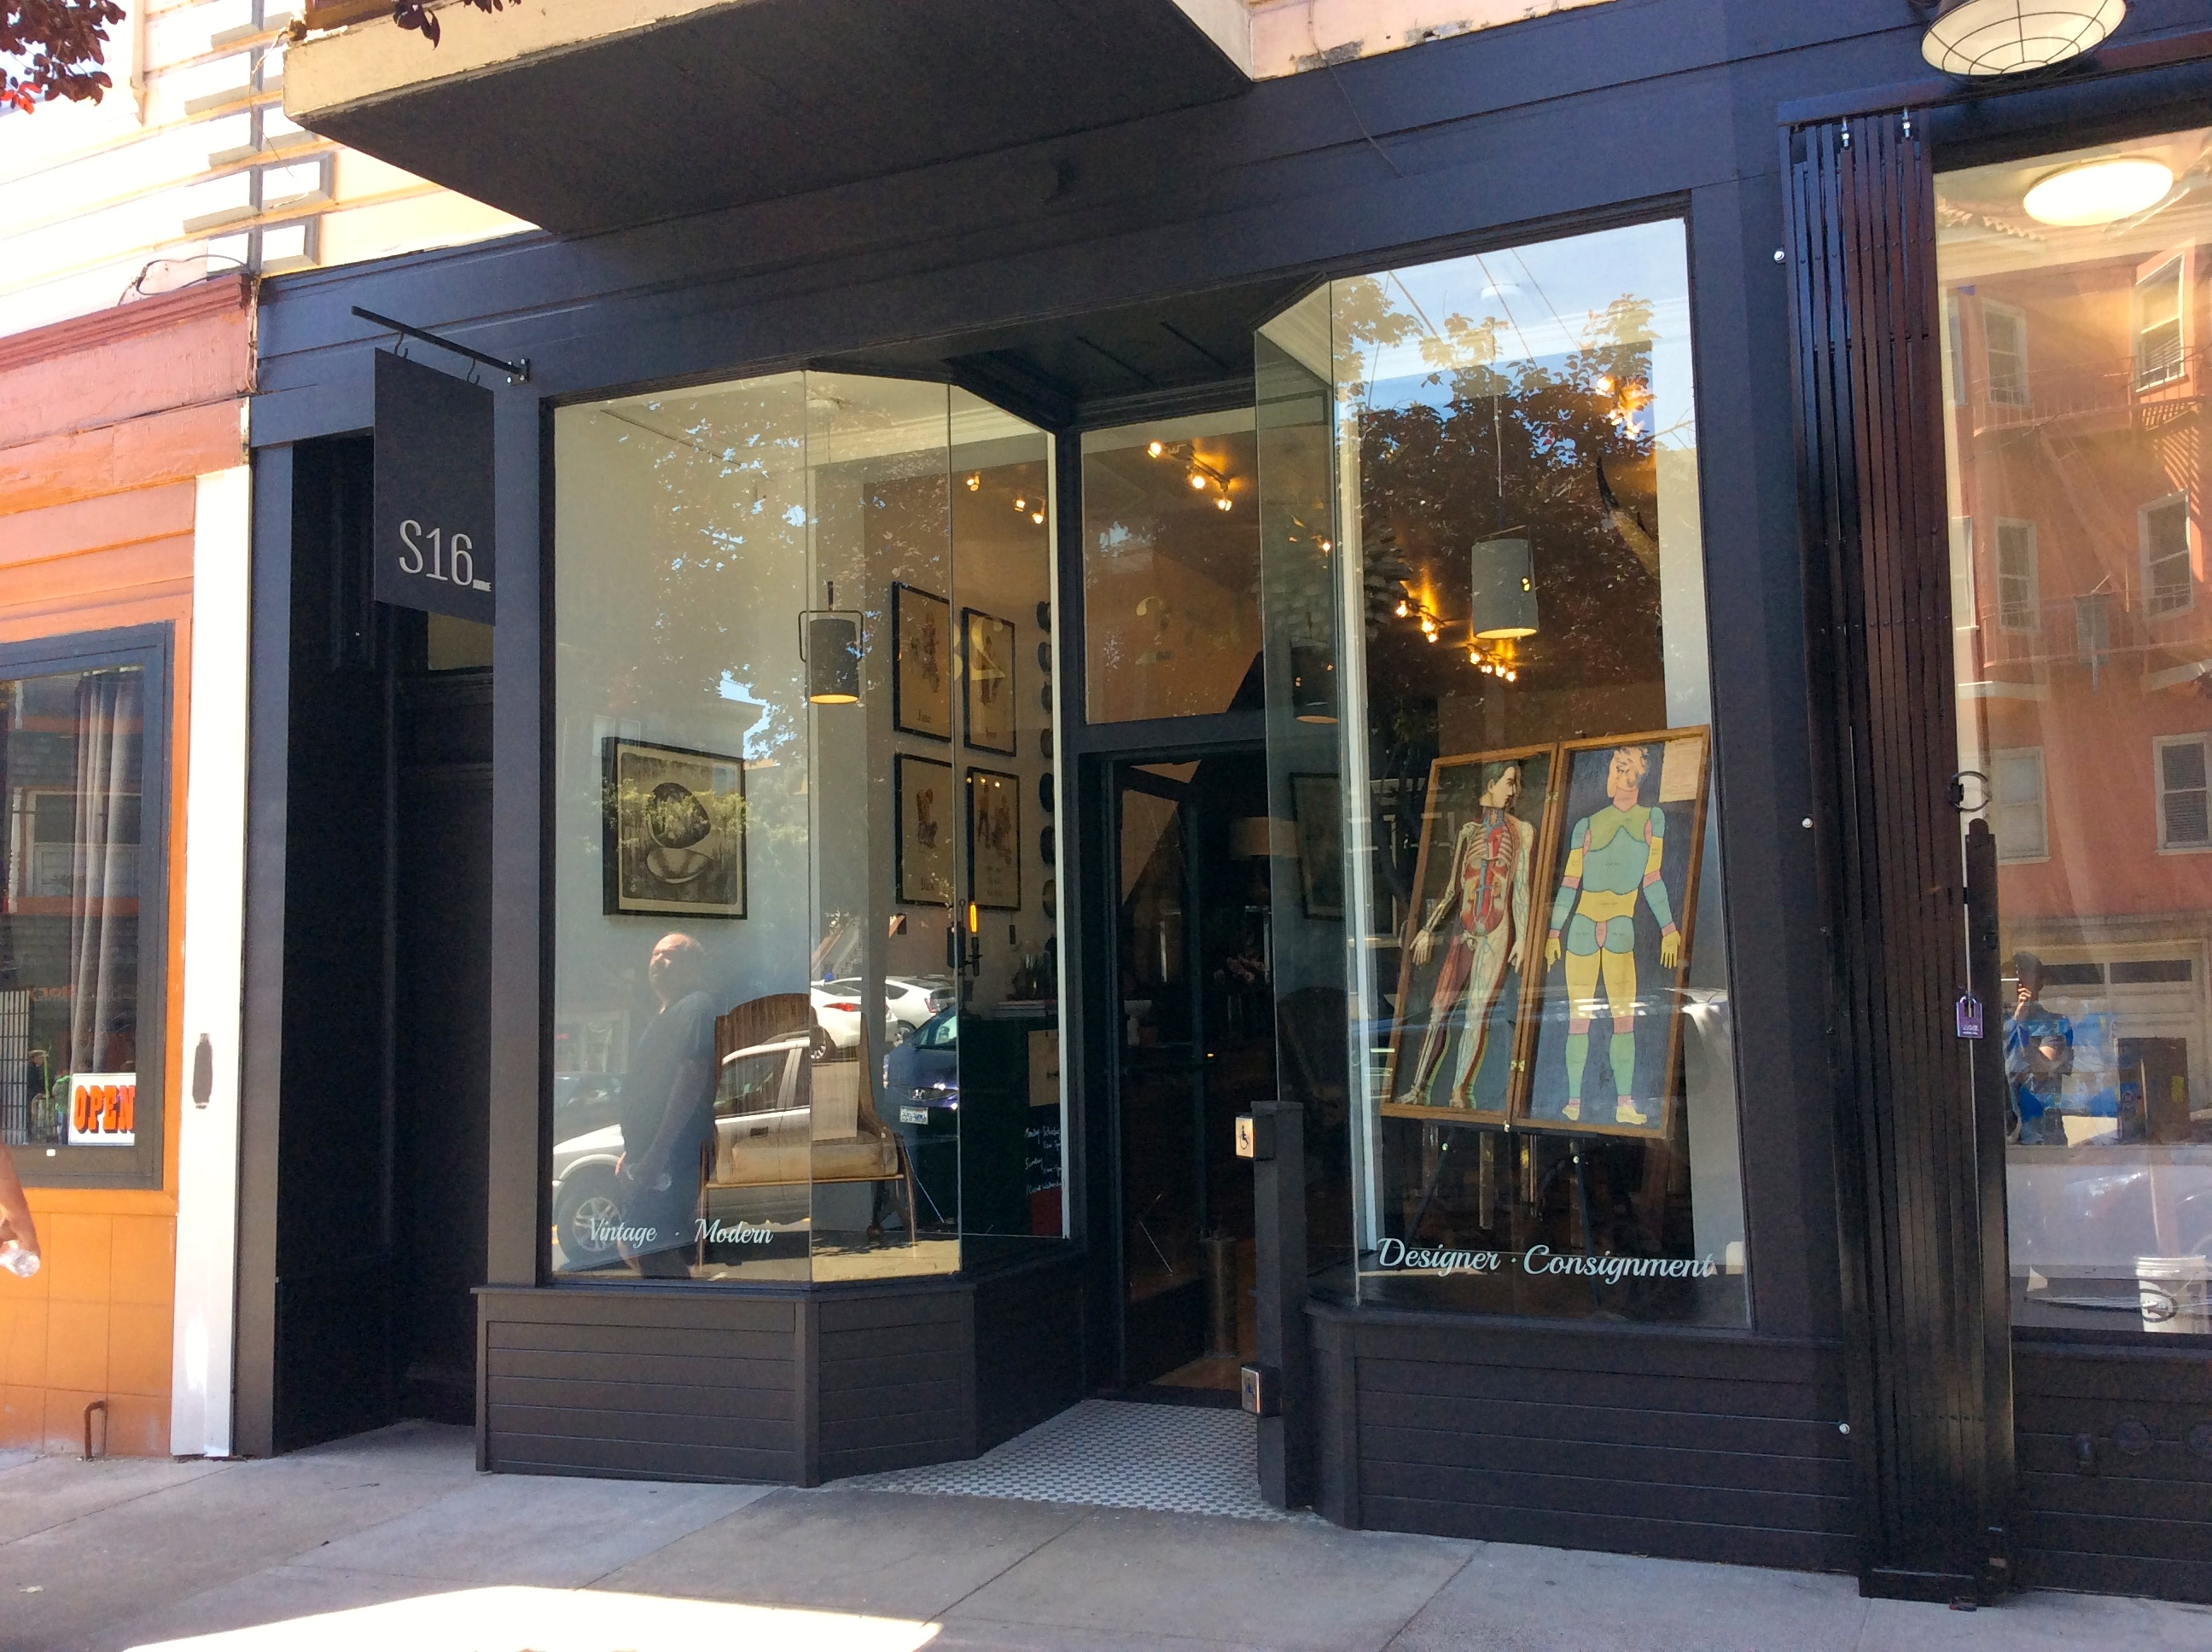 Home Furnishings Store S16 Home Opens In The Castro Hoodline